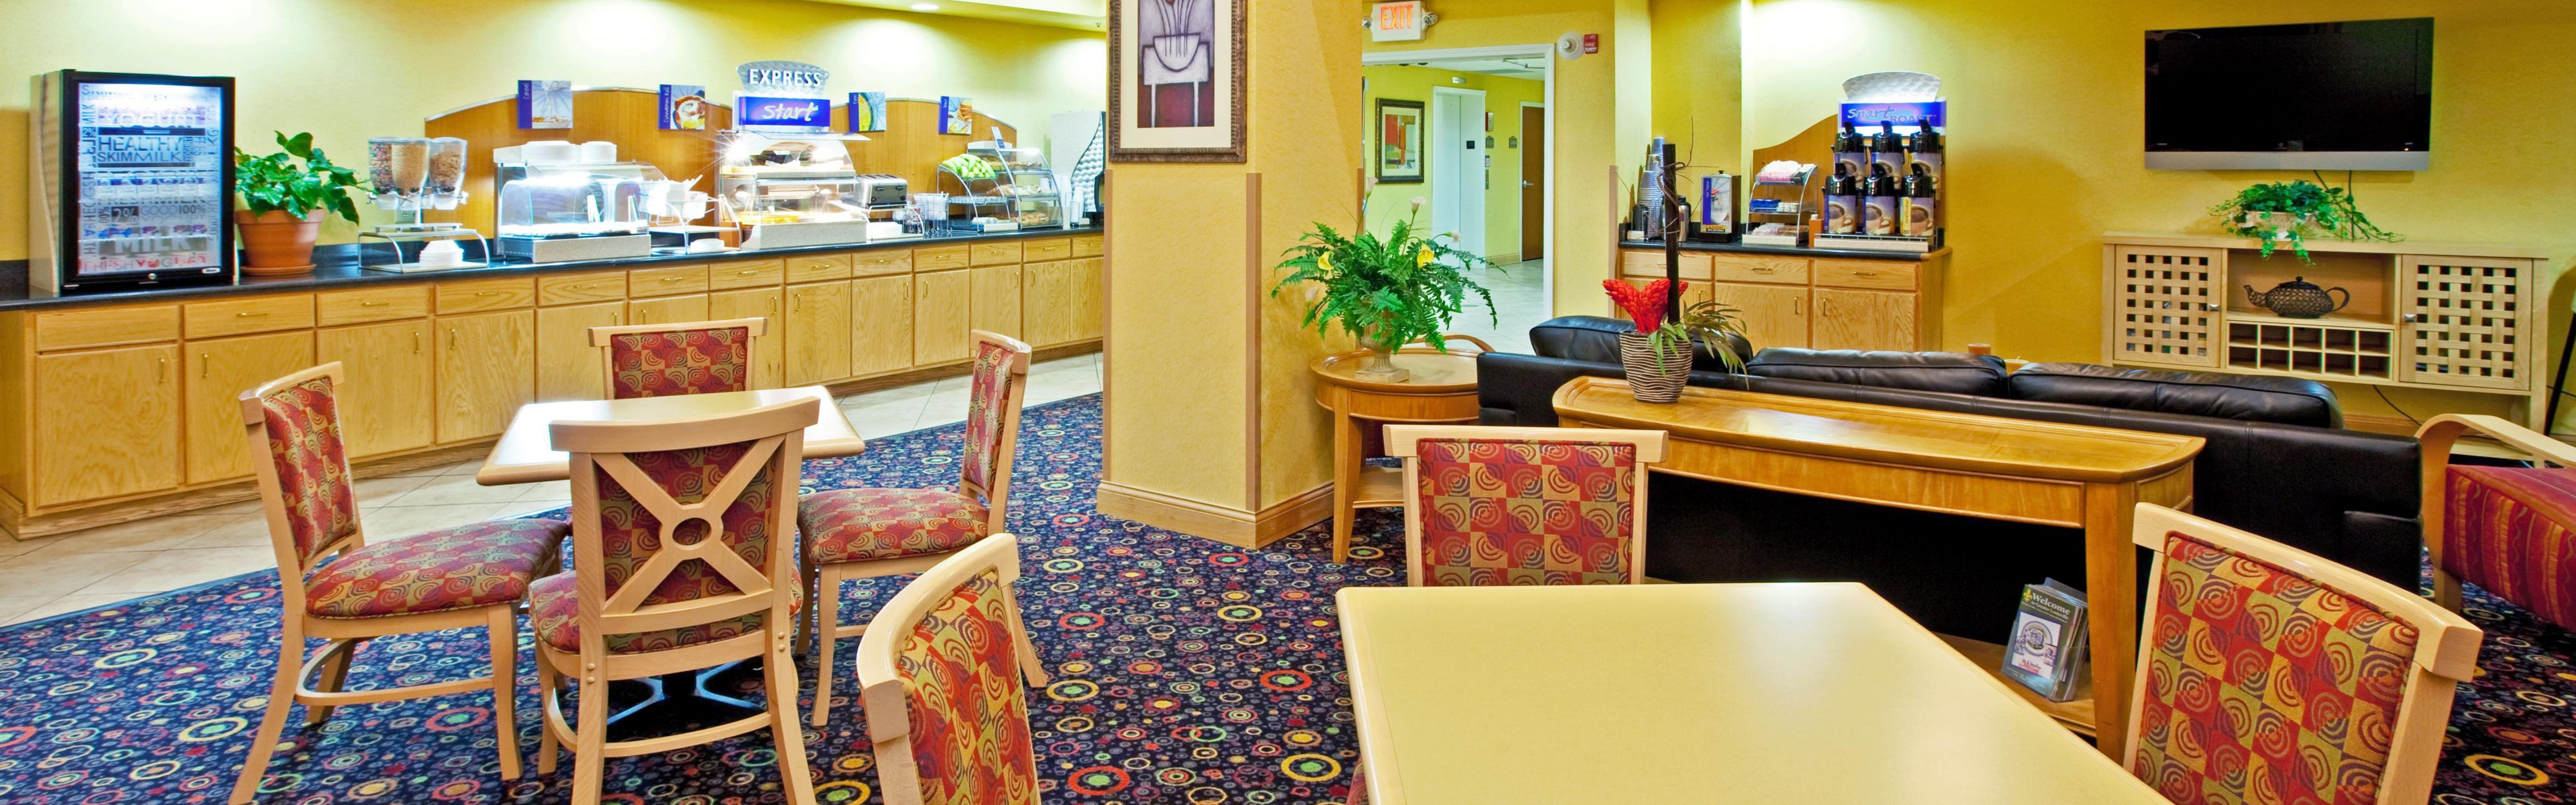 Holiday Inn Express Louisville South-Hillview image 3